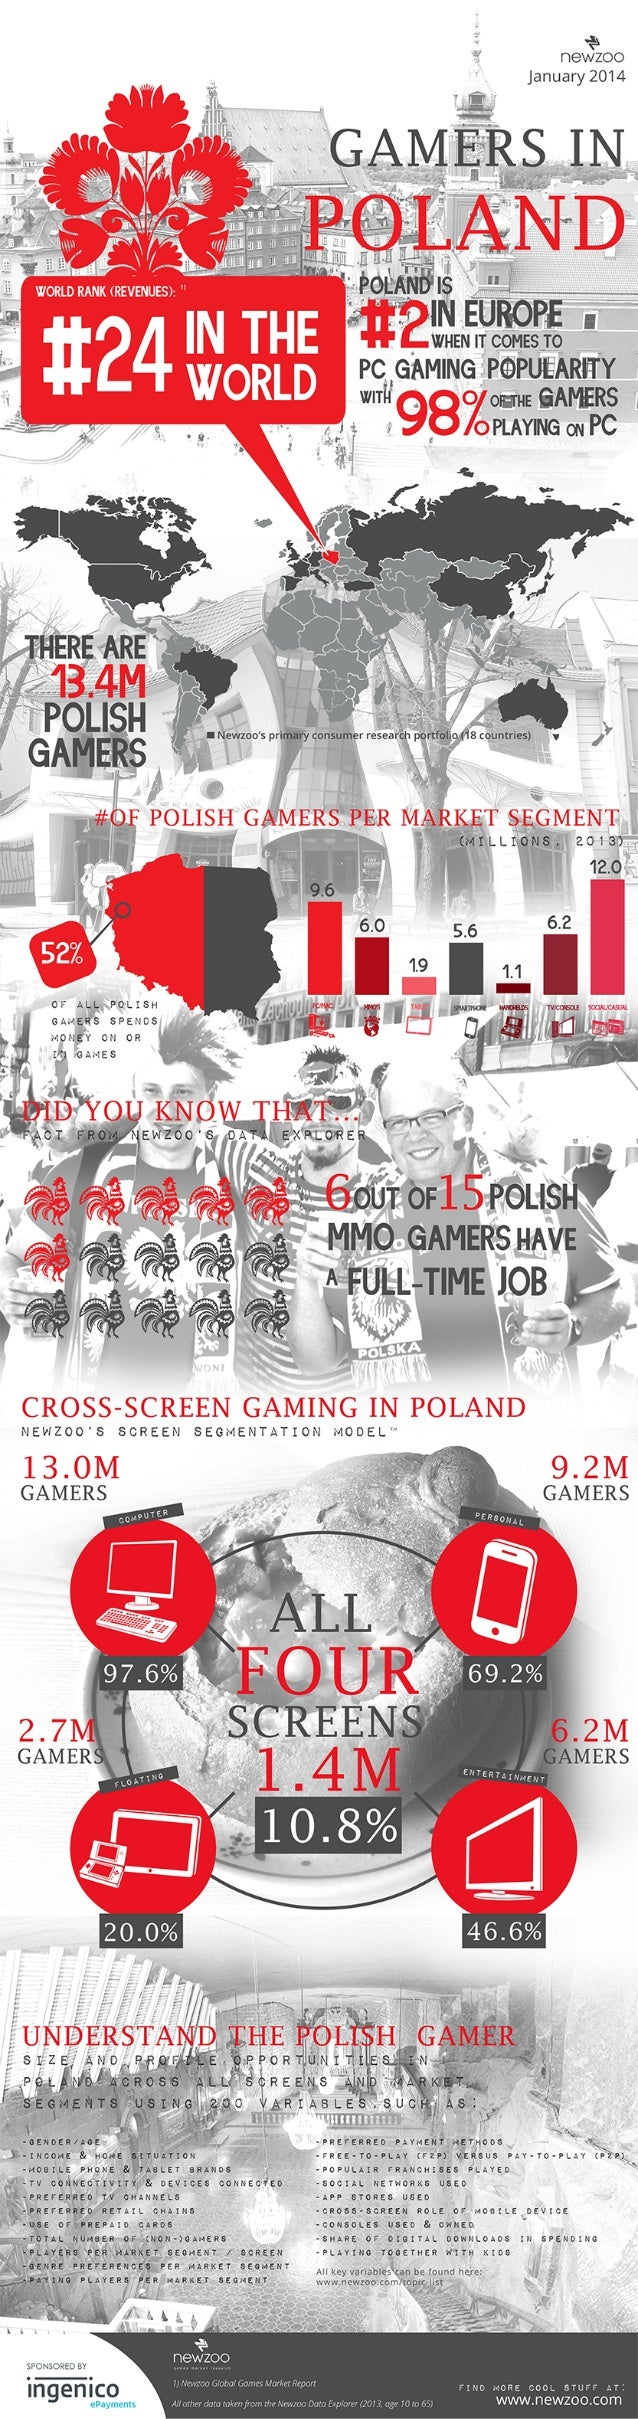 Infographic: The Polish Games Market